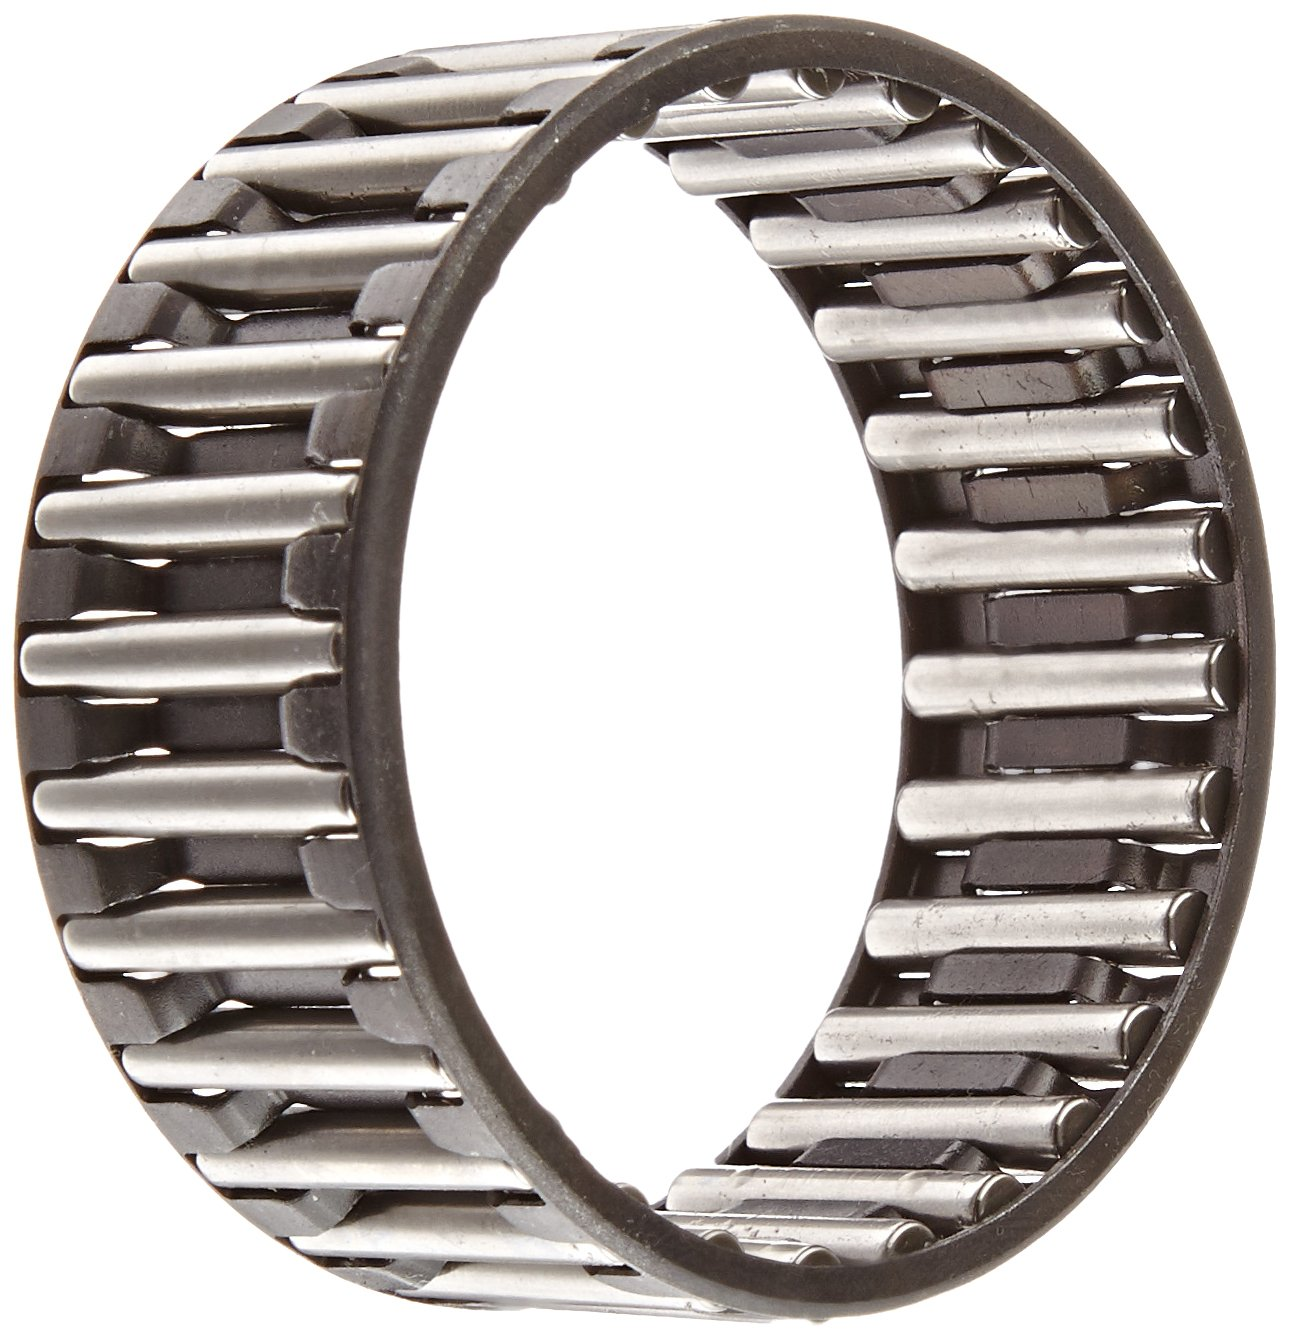 Steel Cage 63mm OD Single Row Metric INA K55X63X25B Needle Roller Bearing 25mm Width 8500rpm Maximum Rotational Speed Open End 55mm ID Cage and Roller